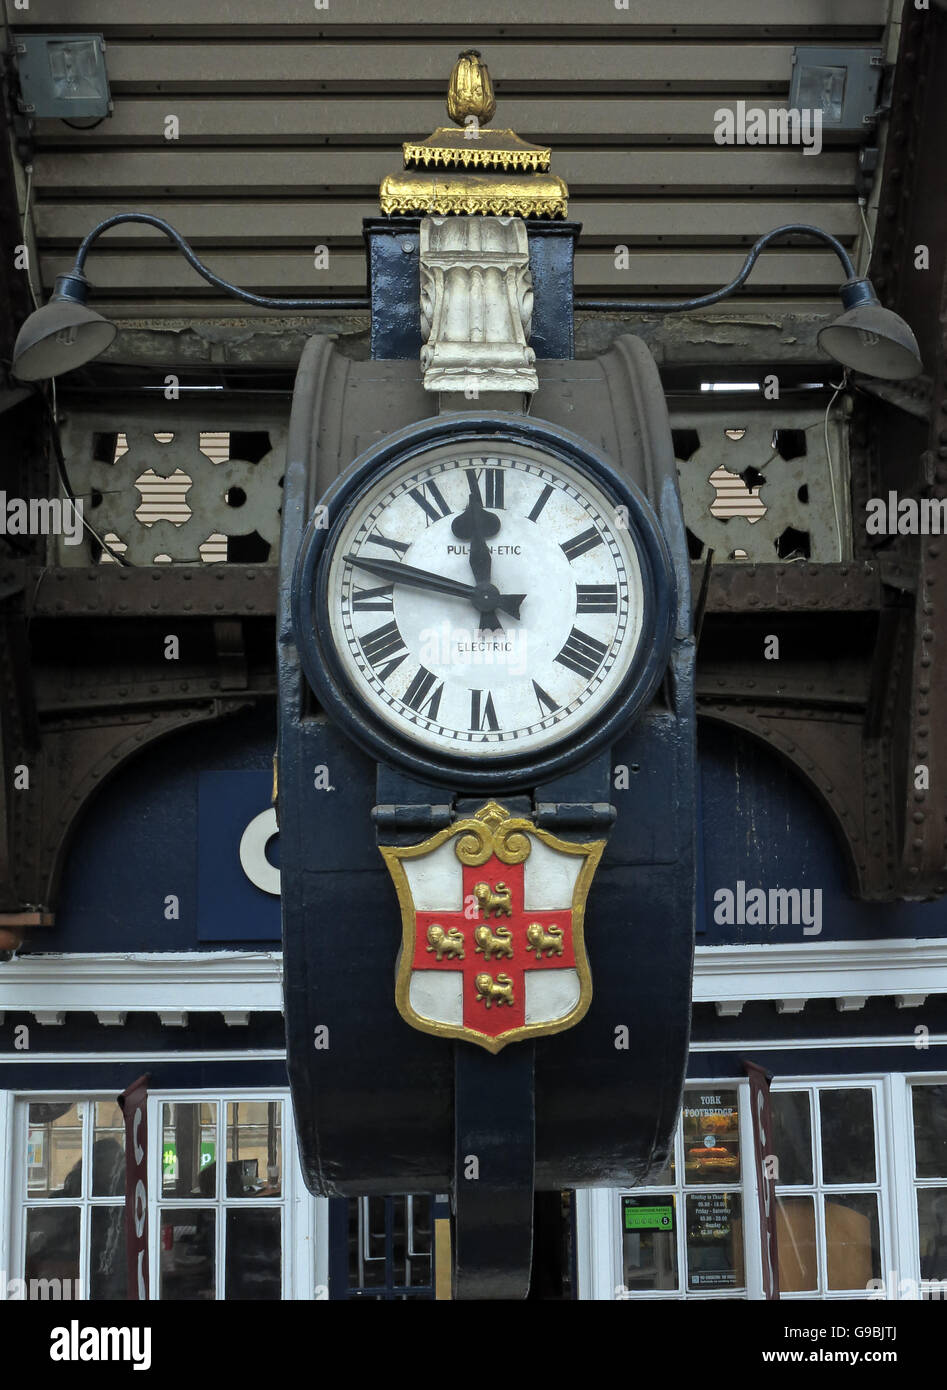 Vintage Electric Clock,York Railway Station,Yorkshire, England,UK - Stock Image